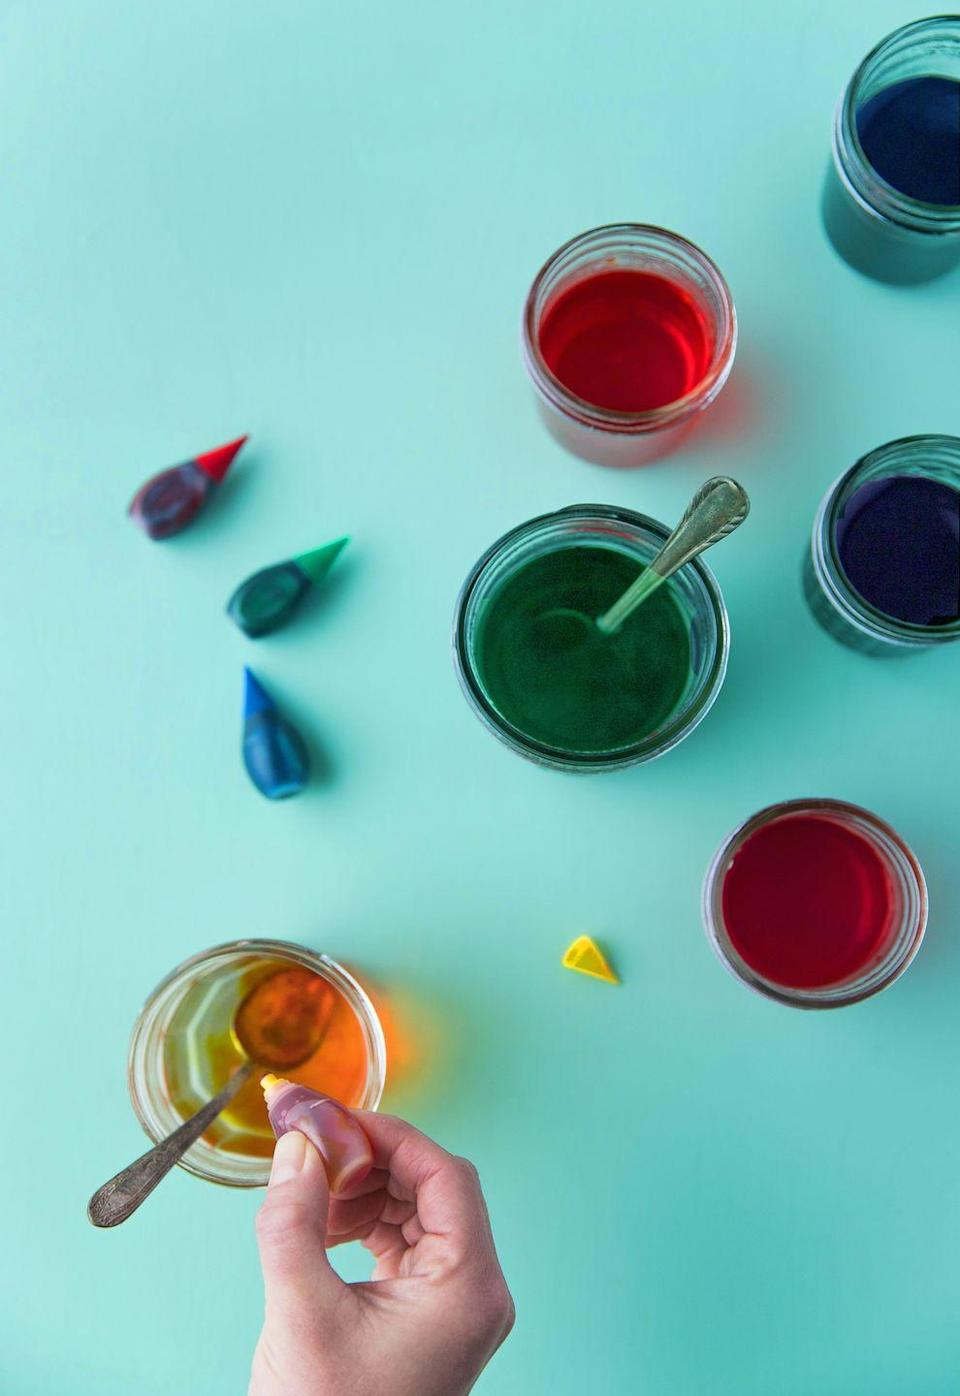 "<p>Bring the water back to a boil. Prep one small cup or glass for each color you'd like to use. Add one tablespoon of vinegar to each glass, and then pour in the boiling water.</p><p>For the brightest colors, add 10 drops of food coloring to each glass. (If you're mixing shades, use only five drops of each.) Stir until the dye is completely dissolved.</p><p><a class=""link rapid-noclick-resp"" href=""https://www.amazon.com/McCormick-SYNCHKG034068-Assorted-Food-Color/dp/B000V8BJVU/?tag=syn-yahoo-20&ascsubtag=%5Bartid%7C10050.g.26810304%5Bsrc%7Cyahoo-us"" rel=""nofollow noopener"" target=""_blank"" data-ylk=""slk:SHOP FOOD COLORING"">SHOP FOOD COLORING</a></p>"